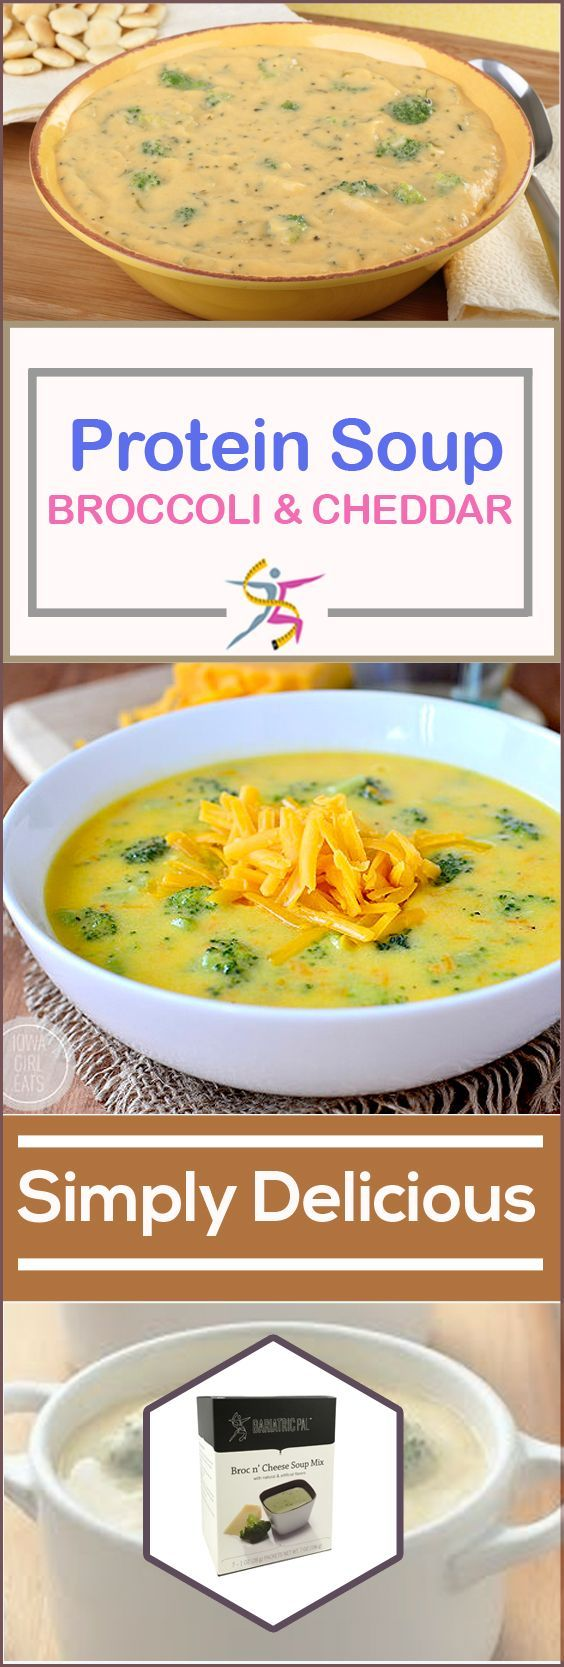 BariatricPal Protein Soup - Broccoli and CheddarBariatricPal Protein Soup is your mealtime solution. Just add water and enjoy your instant high-protein soup. BariatricPal Protein Soup – Broccoli and Cheddar is a creamy comfort food without the extra fat and calories. Each bowl has only 100 calories and almost no fat! It has a cheesy flavor and real broccoli, along with 15 grams of protein. It can make you feel better pre-op and post-op while giving you the protein you need. 7 packets per box